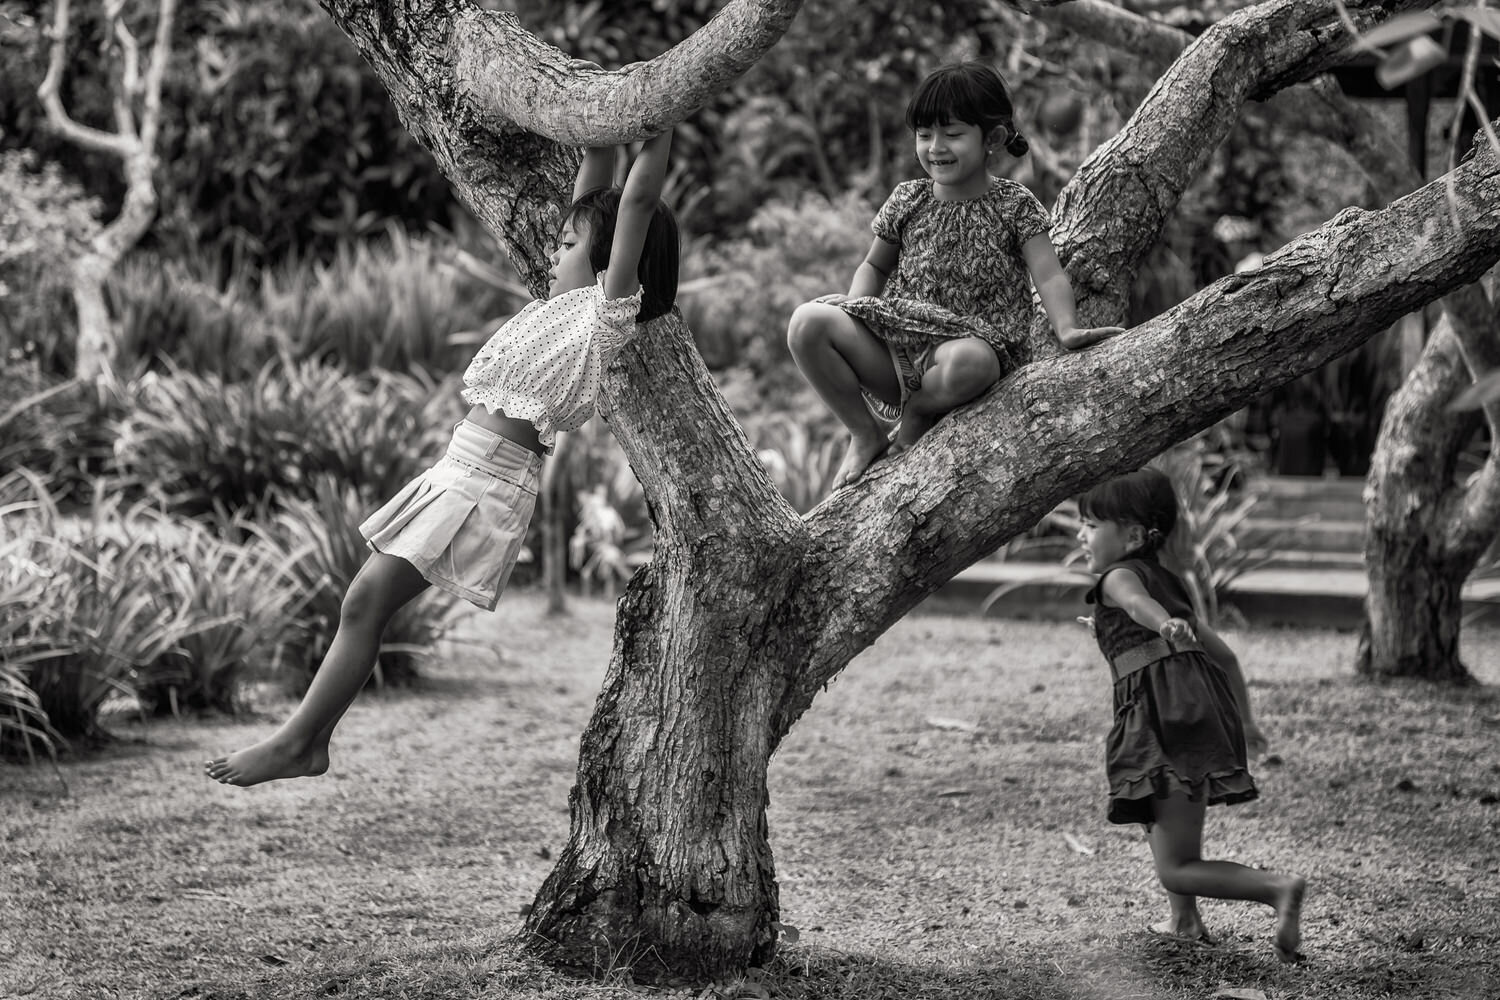 Candid photo of three girls playing around a tree in Bali, Indonesia.